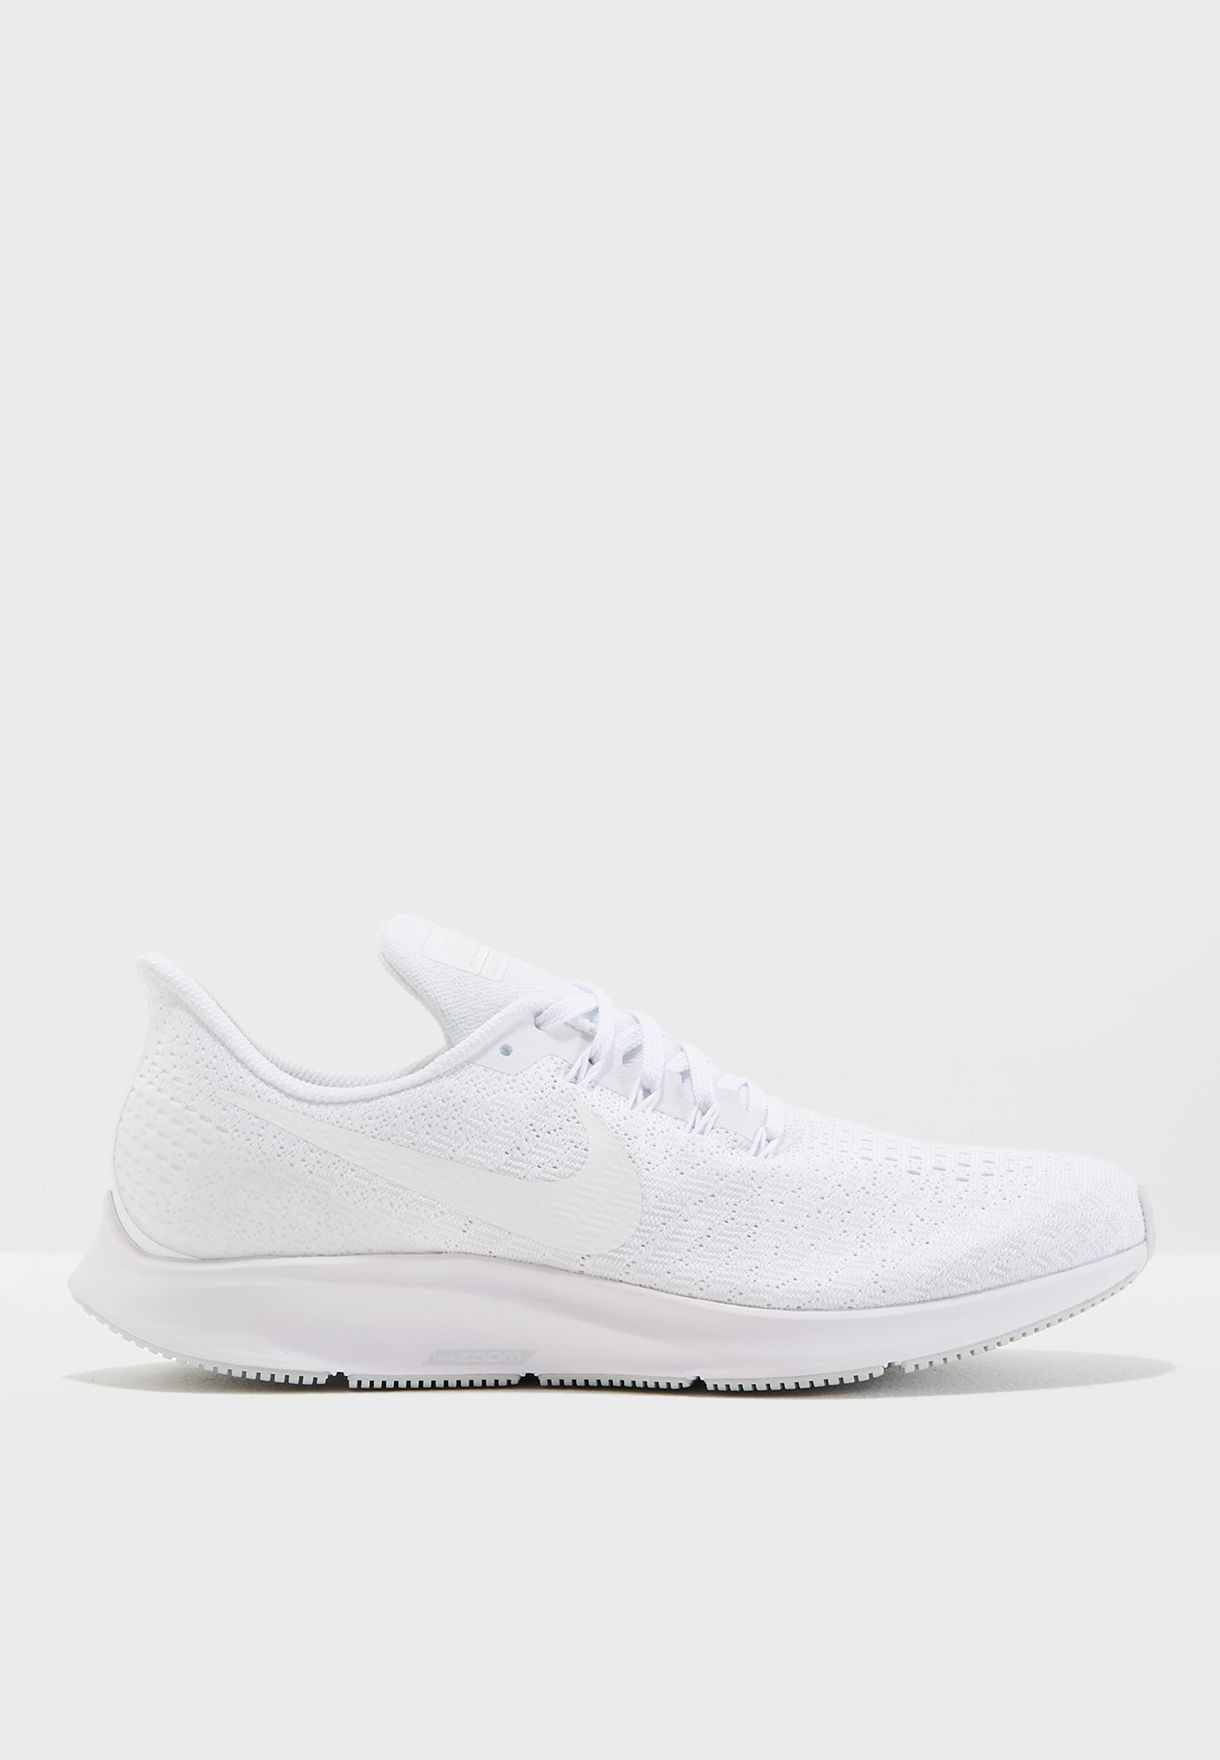 00fbbdffe3e2 Shop Nike white Air Zoom Pegasus 35 942851-100 for Men in UAE ...